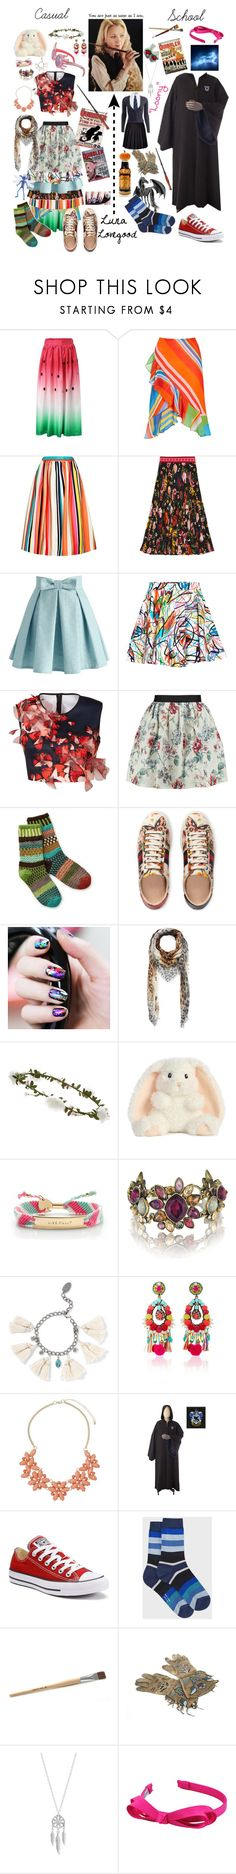 """""""Luna """"Loony"""" Lovegood"""" by ptomusic ❤ liked on Polyvore featuring Lauren Ralph Lauren, Alice + Olivia, Gucci, Chicwish, Jeremy Scott, Clover Canyon, Raoul, Sol Mate Socks, Luna and Alexander McQueen"""